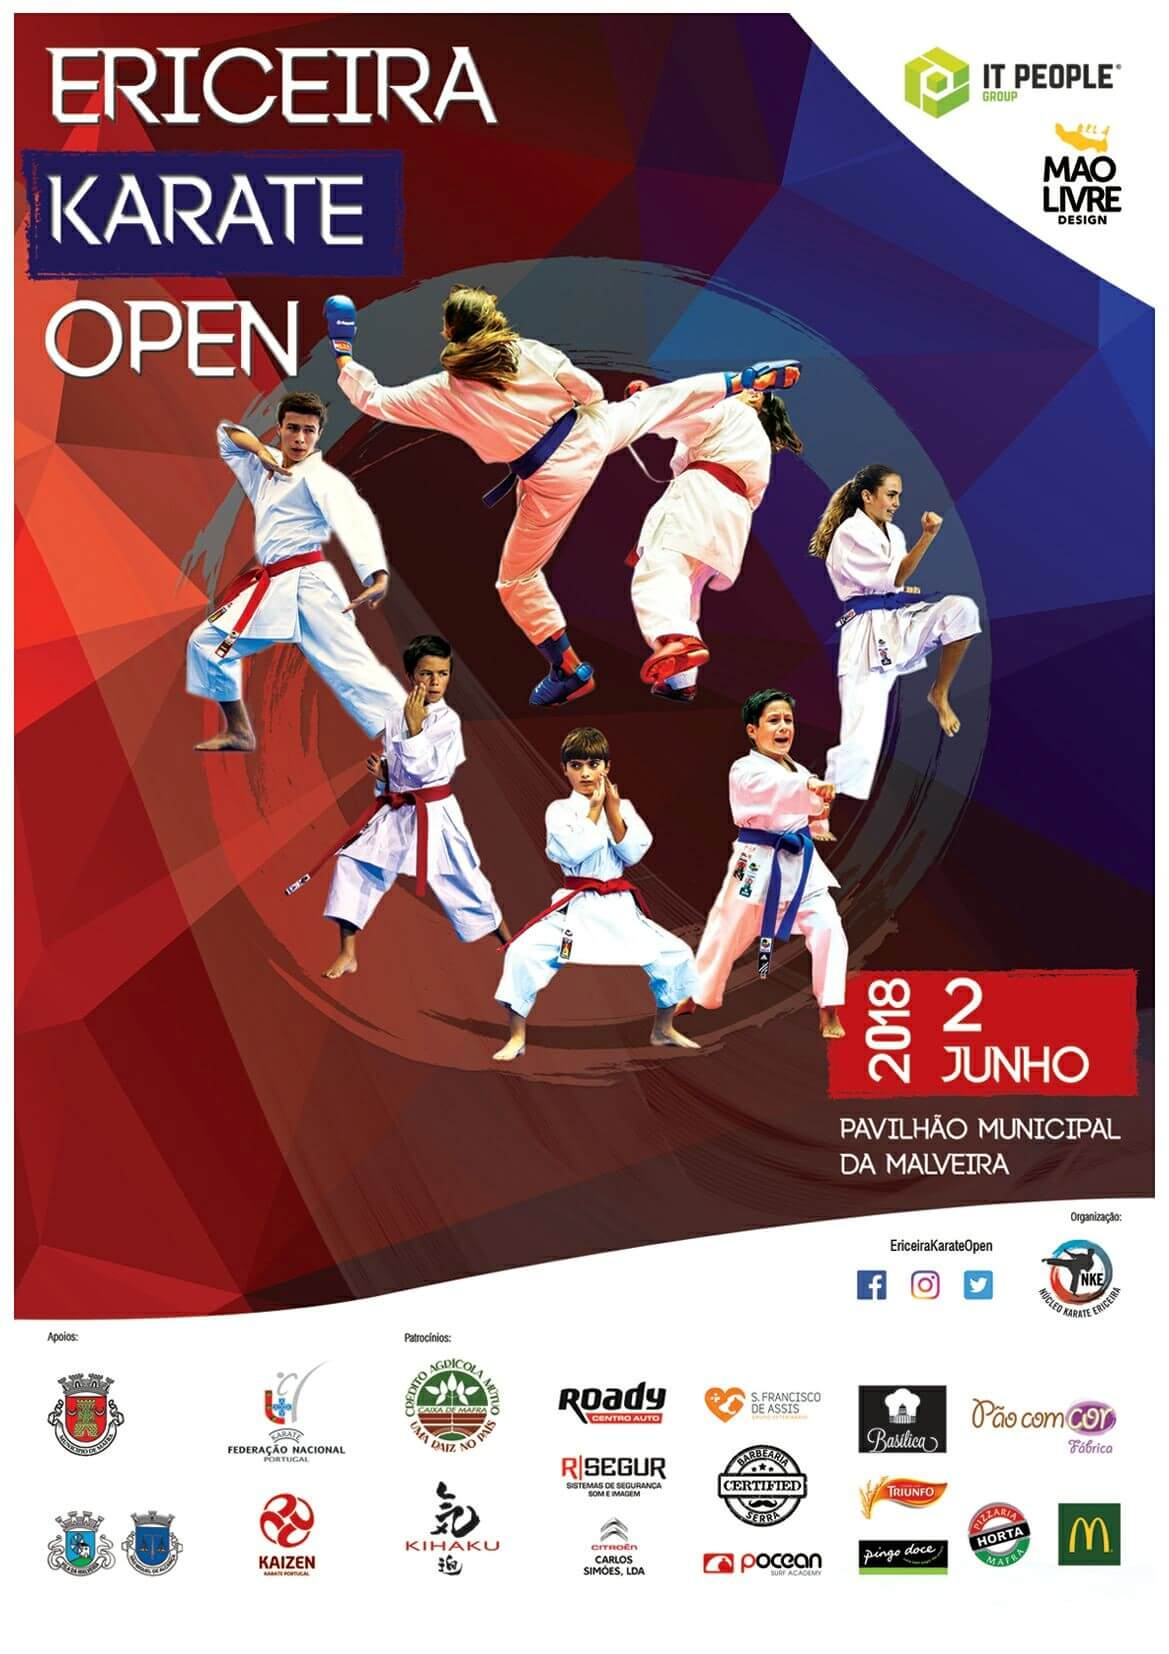 Karate Open - Patrocinio - IT People Innovation - Sponsor